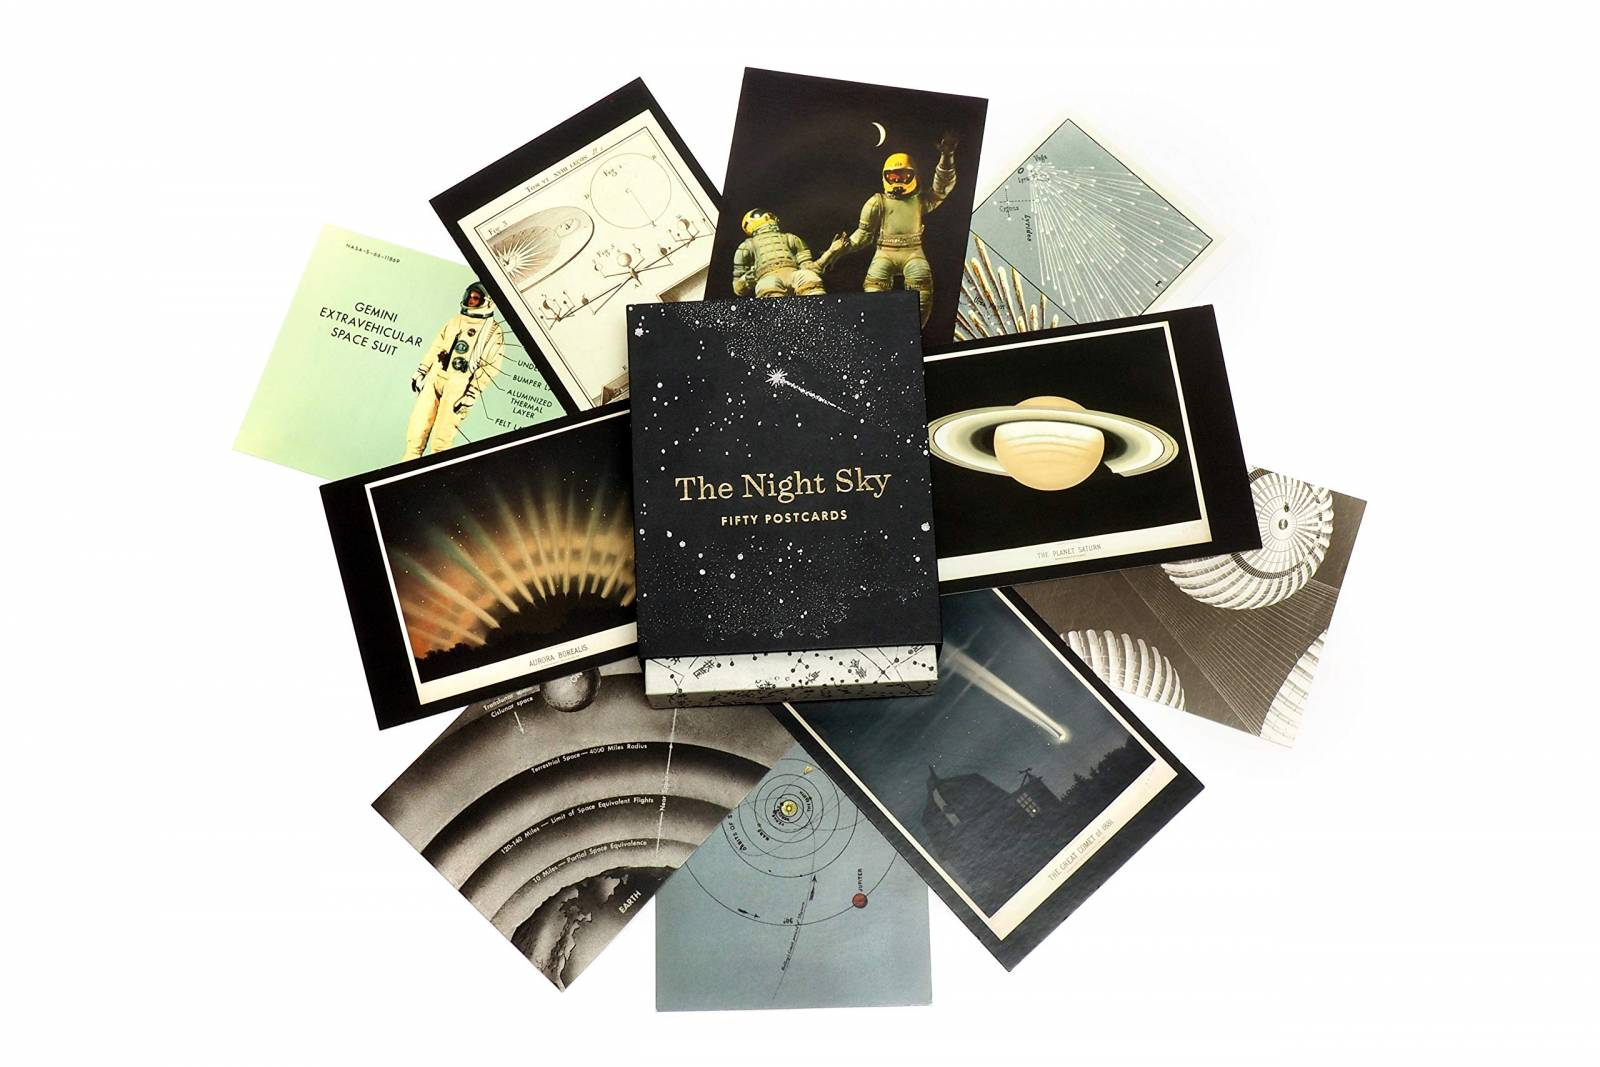 The Night Sky: Box Set Of 50 Postcards thumbnails